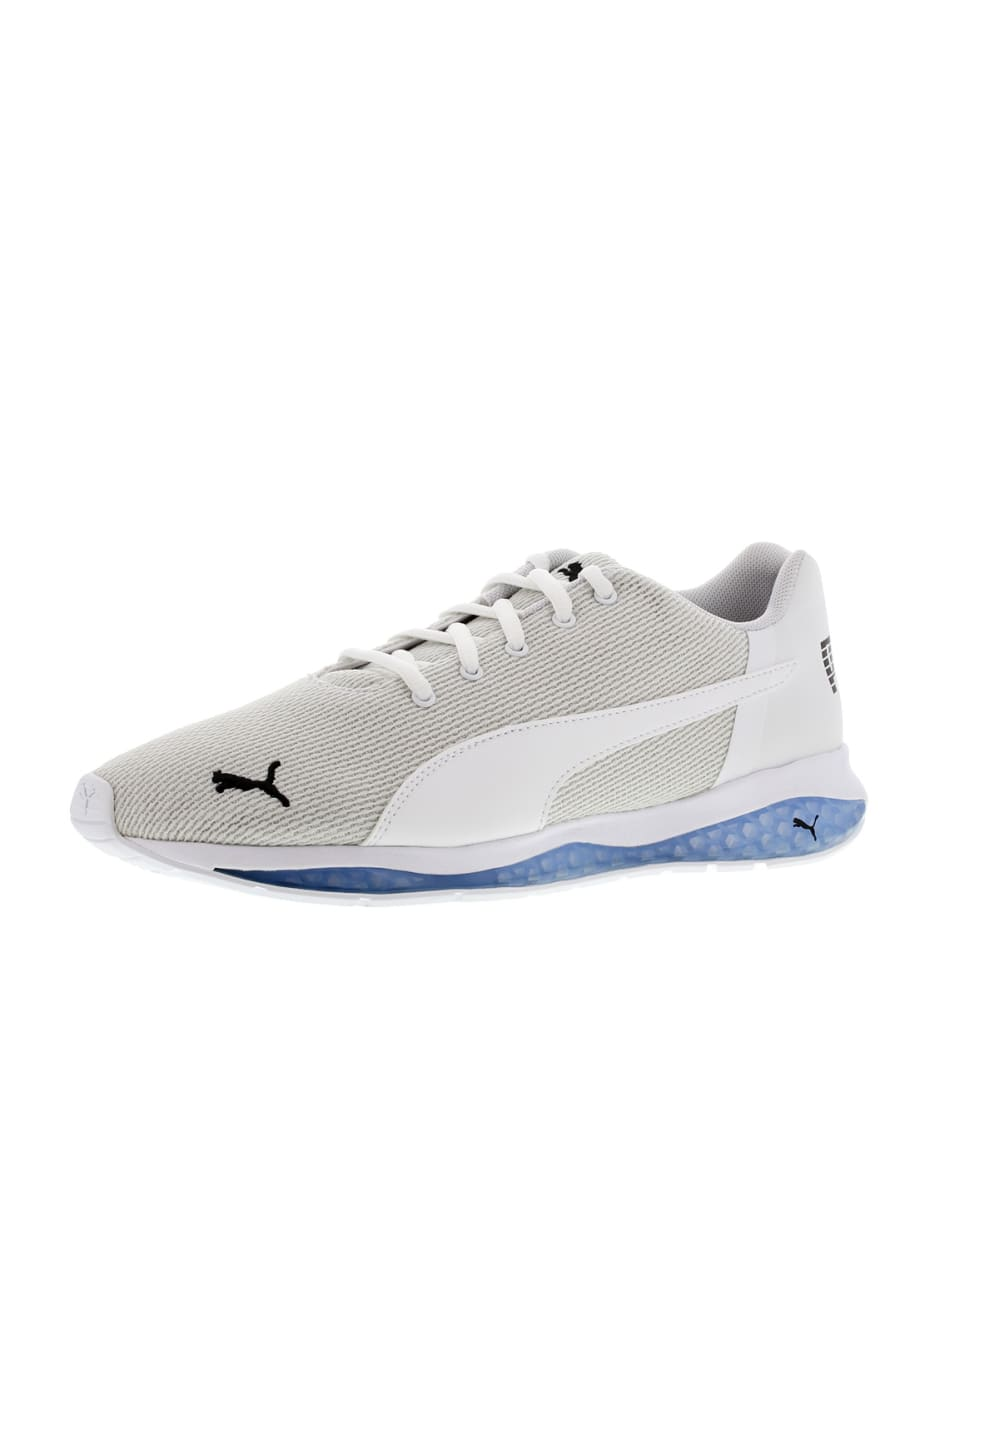 Puma Cell Ultimate Point Indoor shoes for Men White